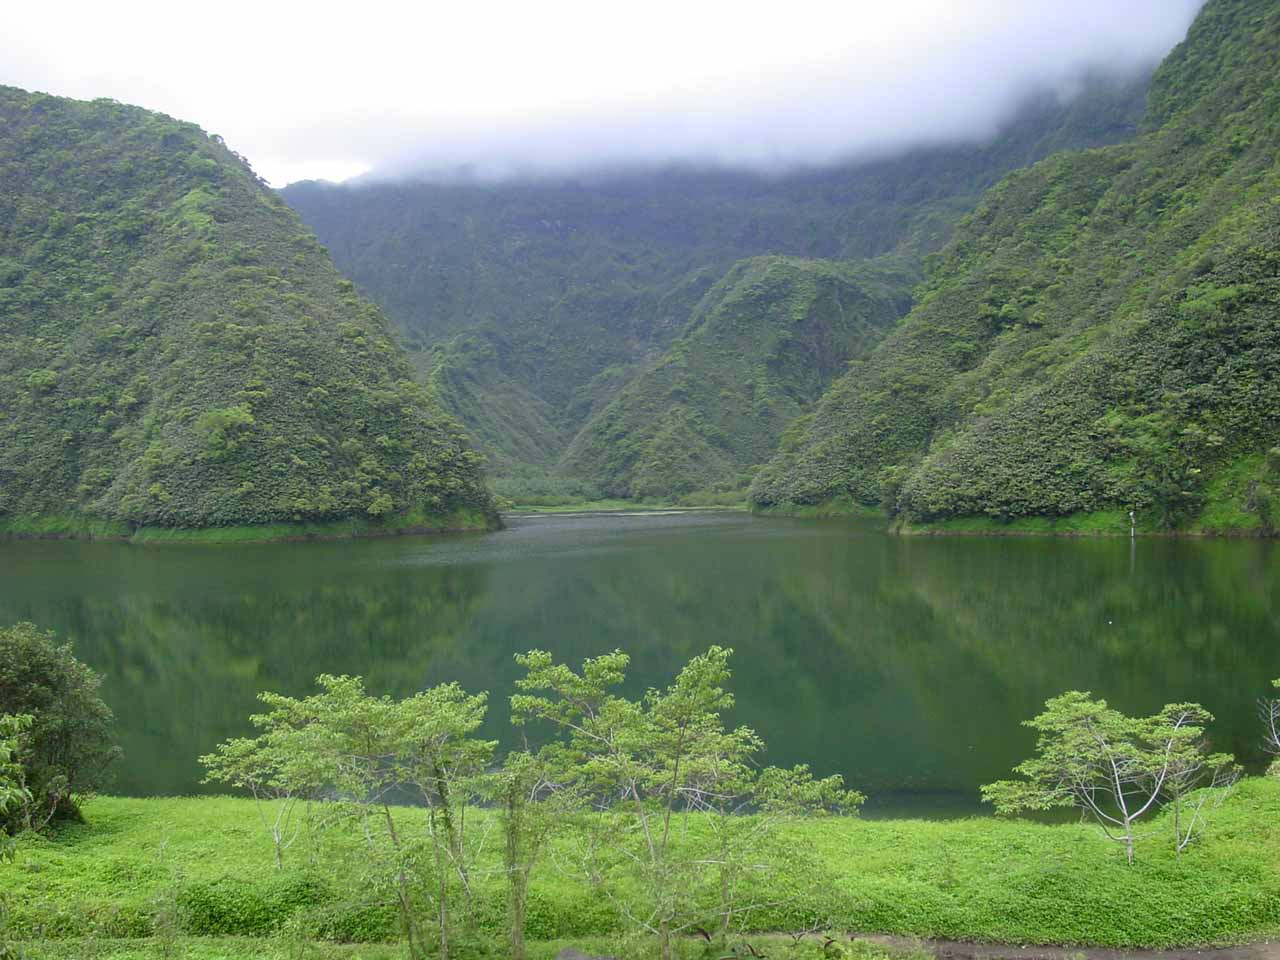 Lake Vaihiria, which was on the southern side of Tahiti Nui after having passed through Papenoo Valley